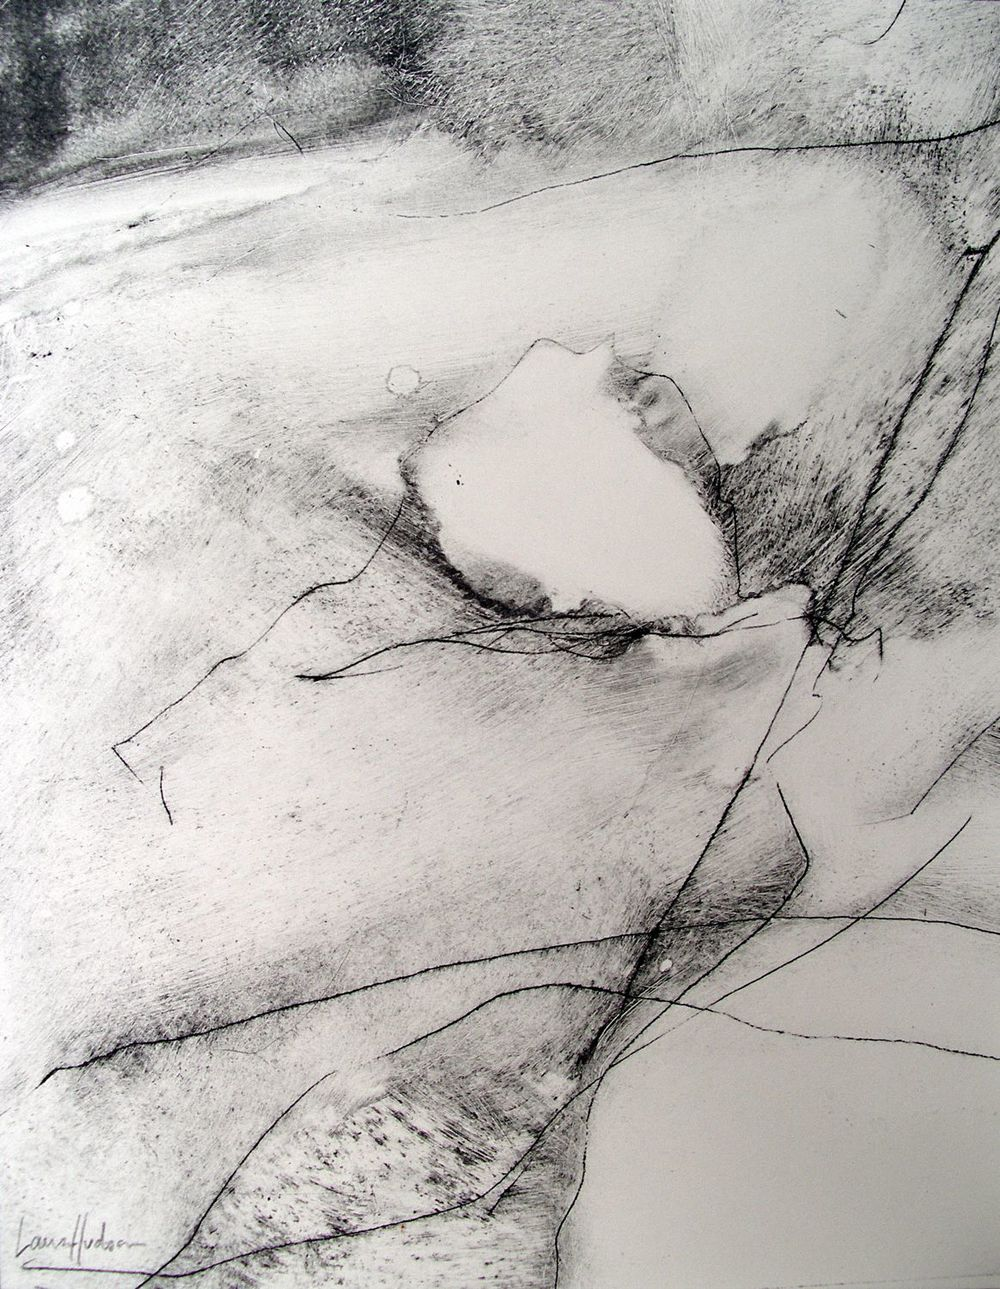 Dartmoor III [29x23cm] dry point + carbon, 2013